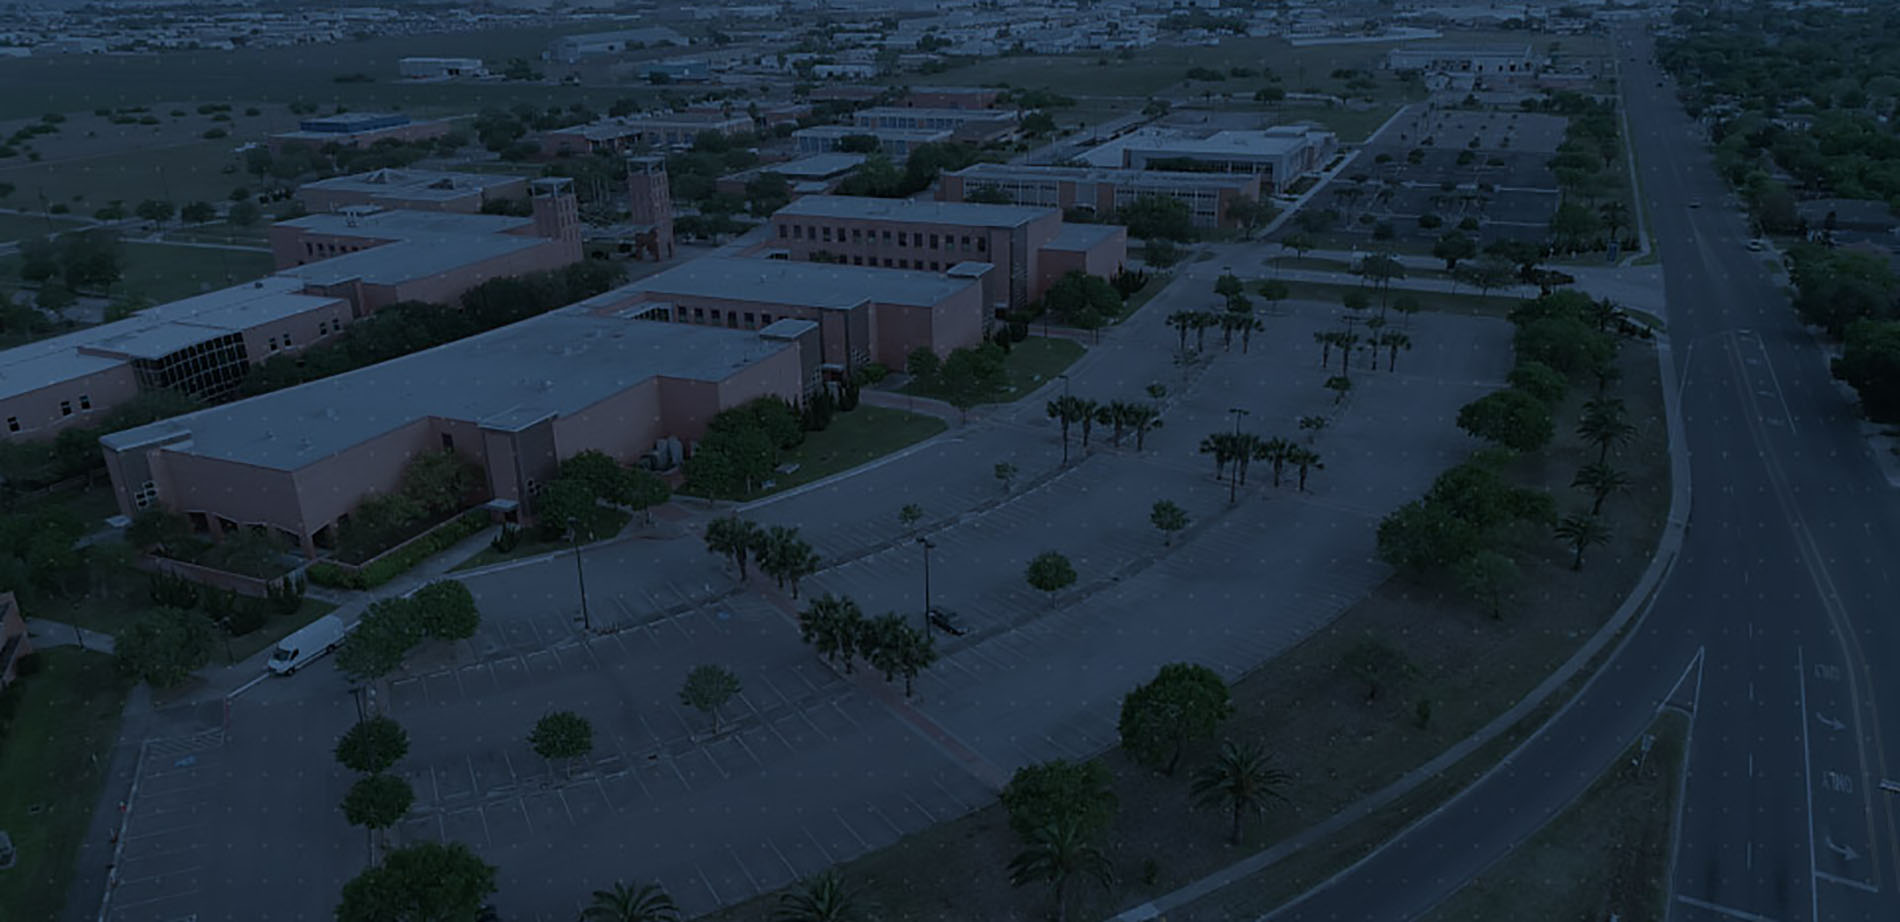 Aerial image of West Campus parking lot